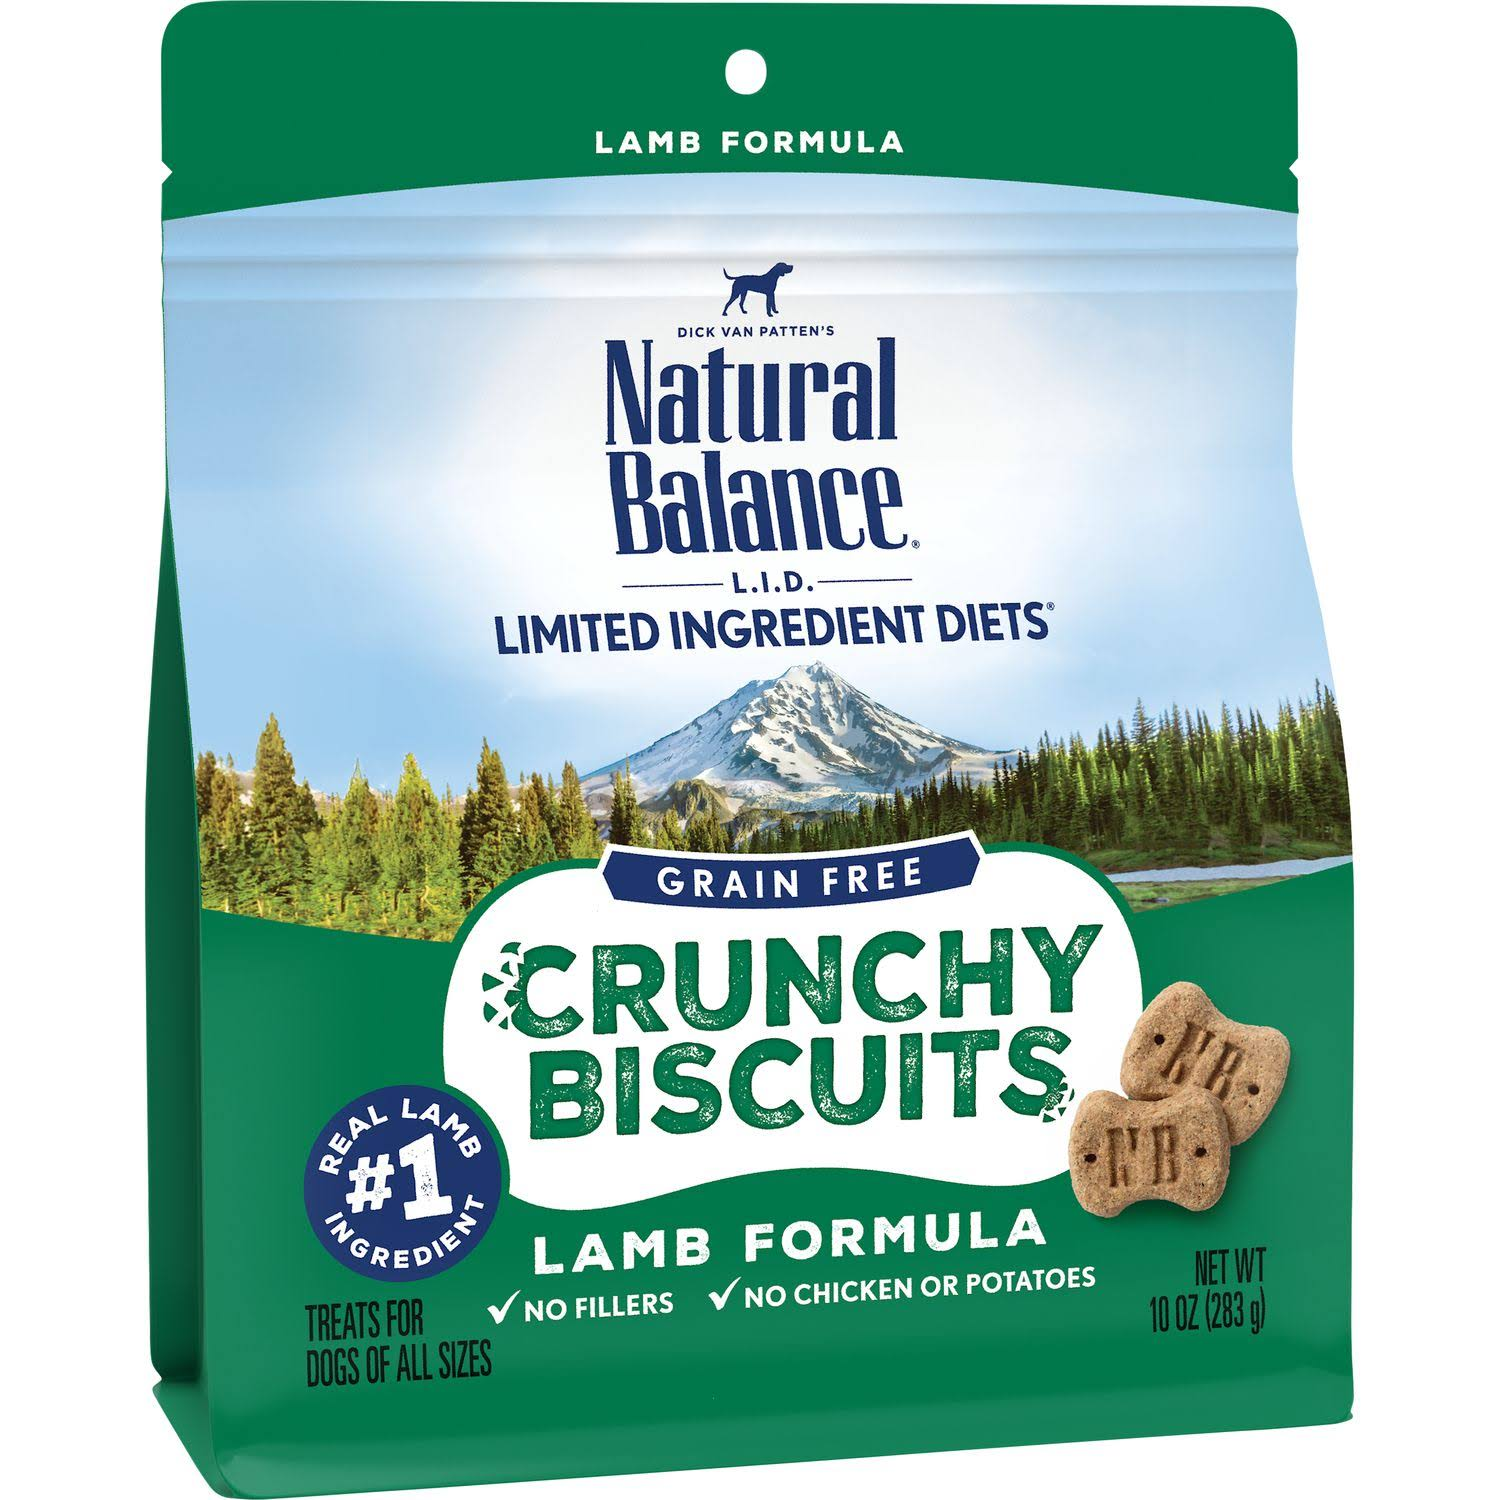 Natural Balance L.I.D. Limited Ingredient Diets Crunchy Biscuits Lamb Formula Dog Treats 10oz